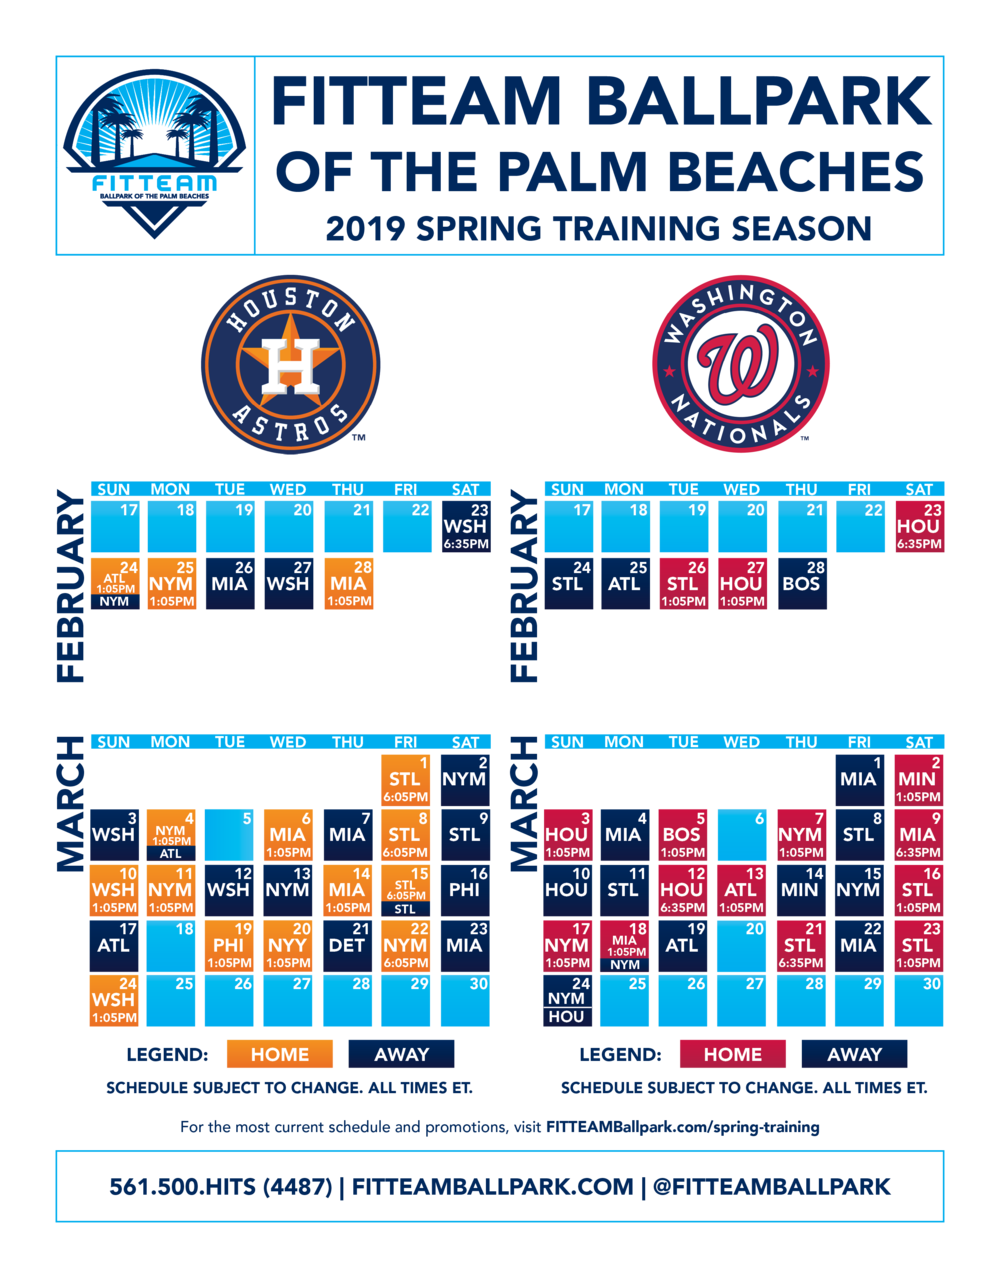 Fitteam 2018 Spring Training Schedule Updated 09-25-18.jpg